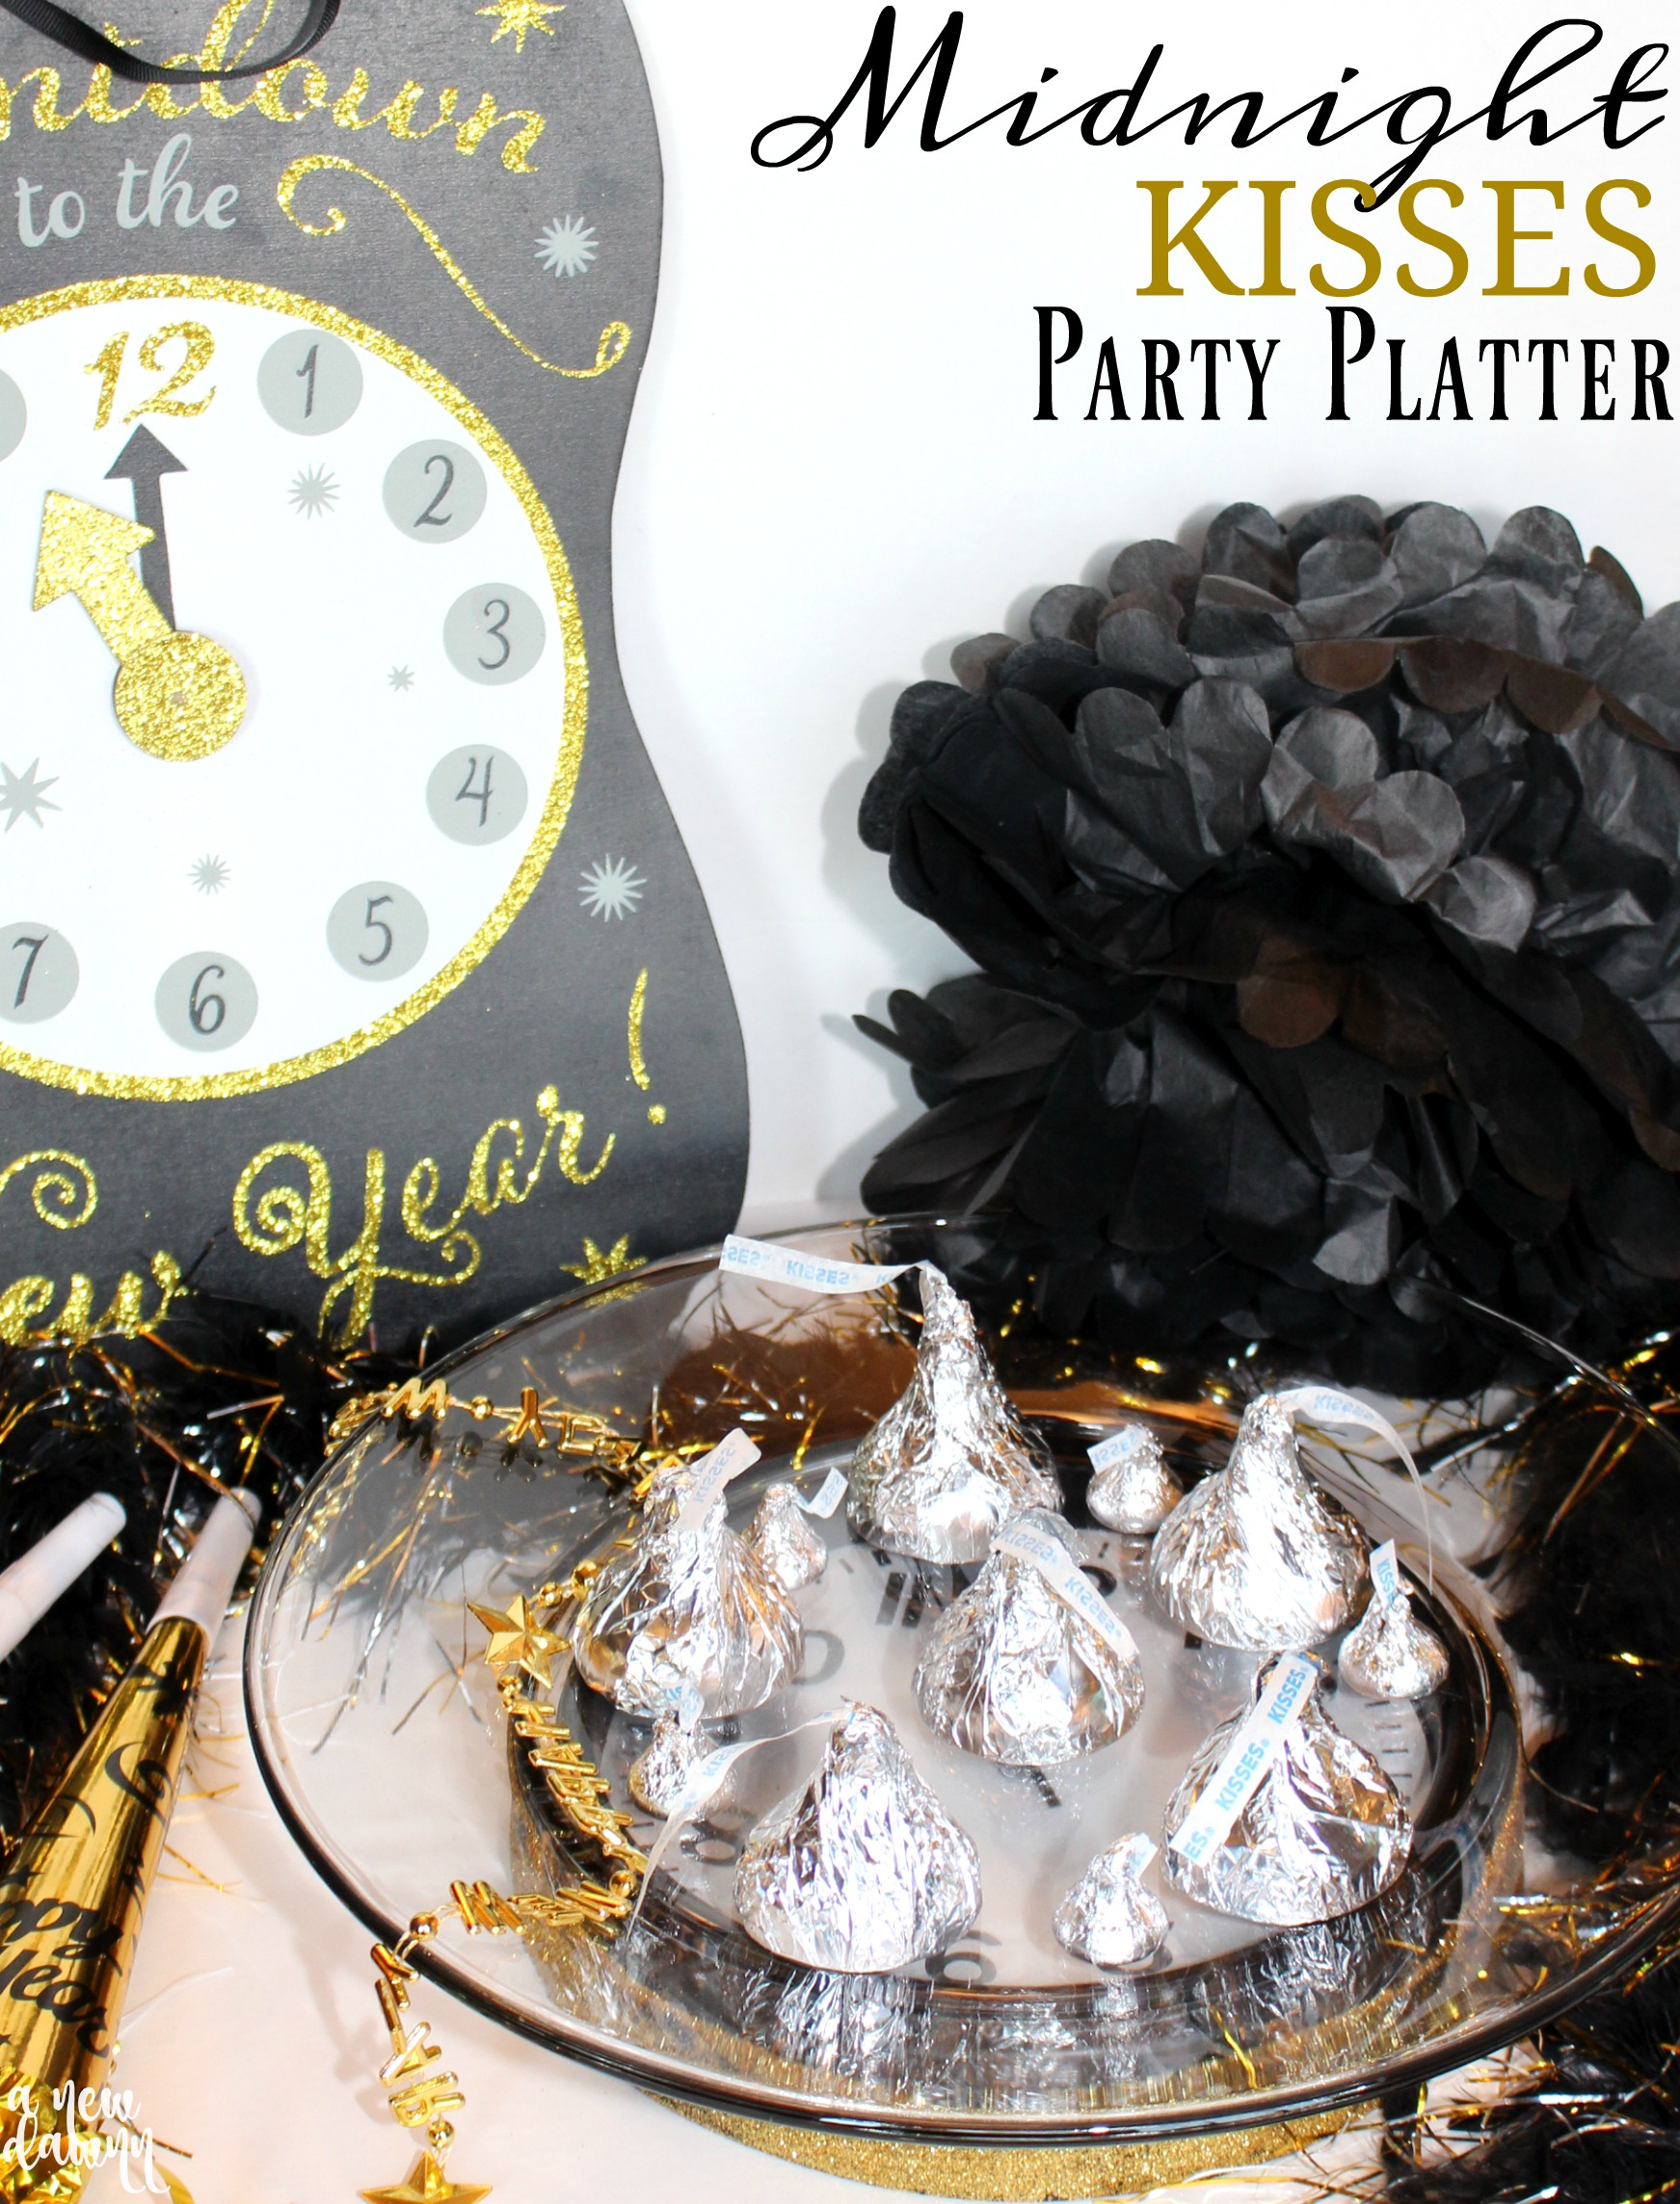 Midnight Kisses Party Platter